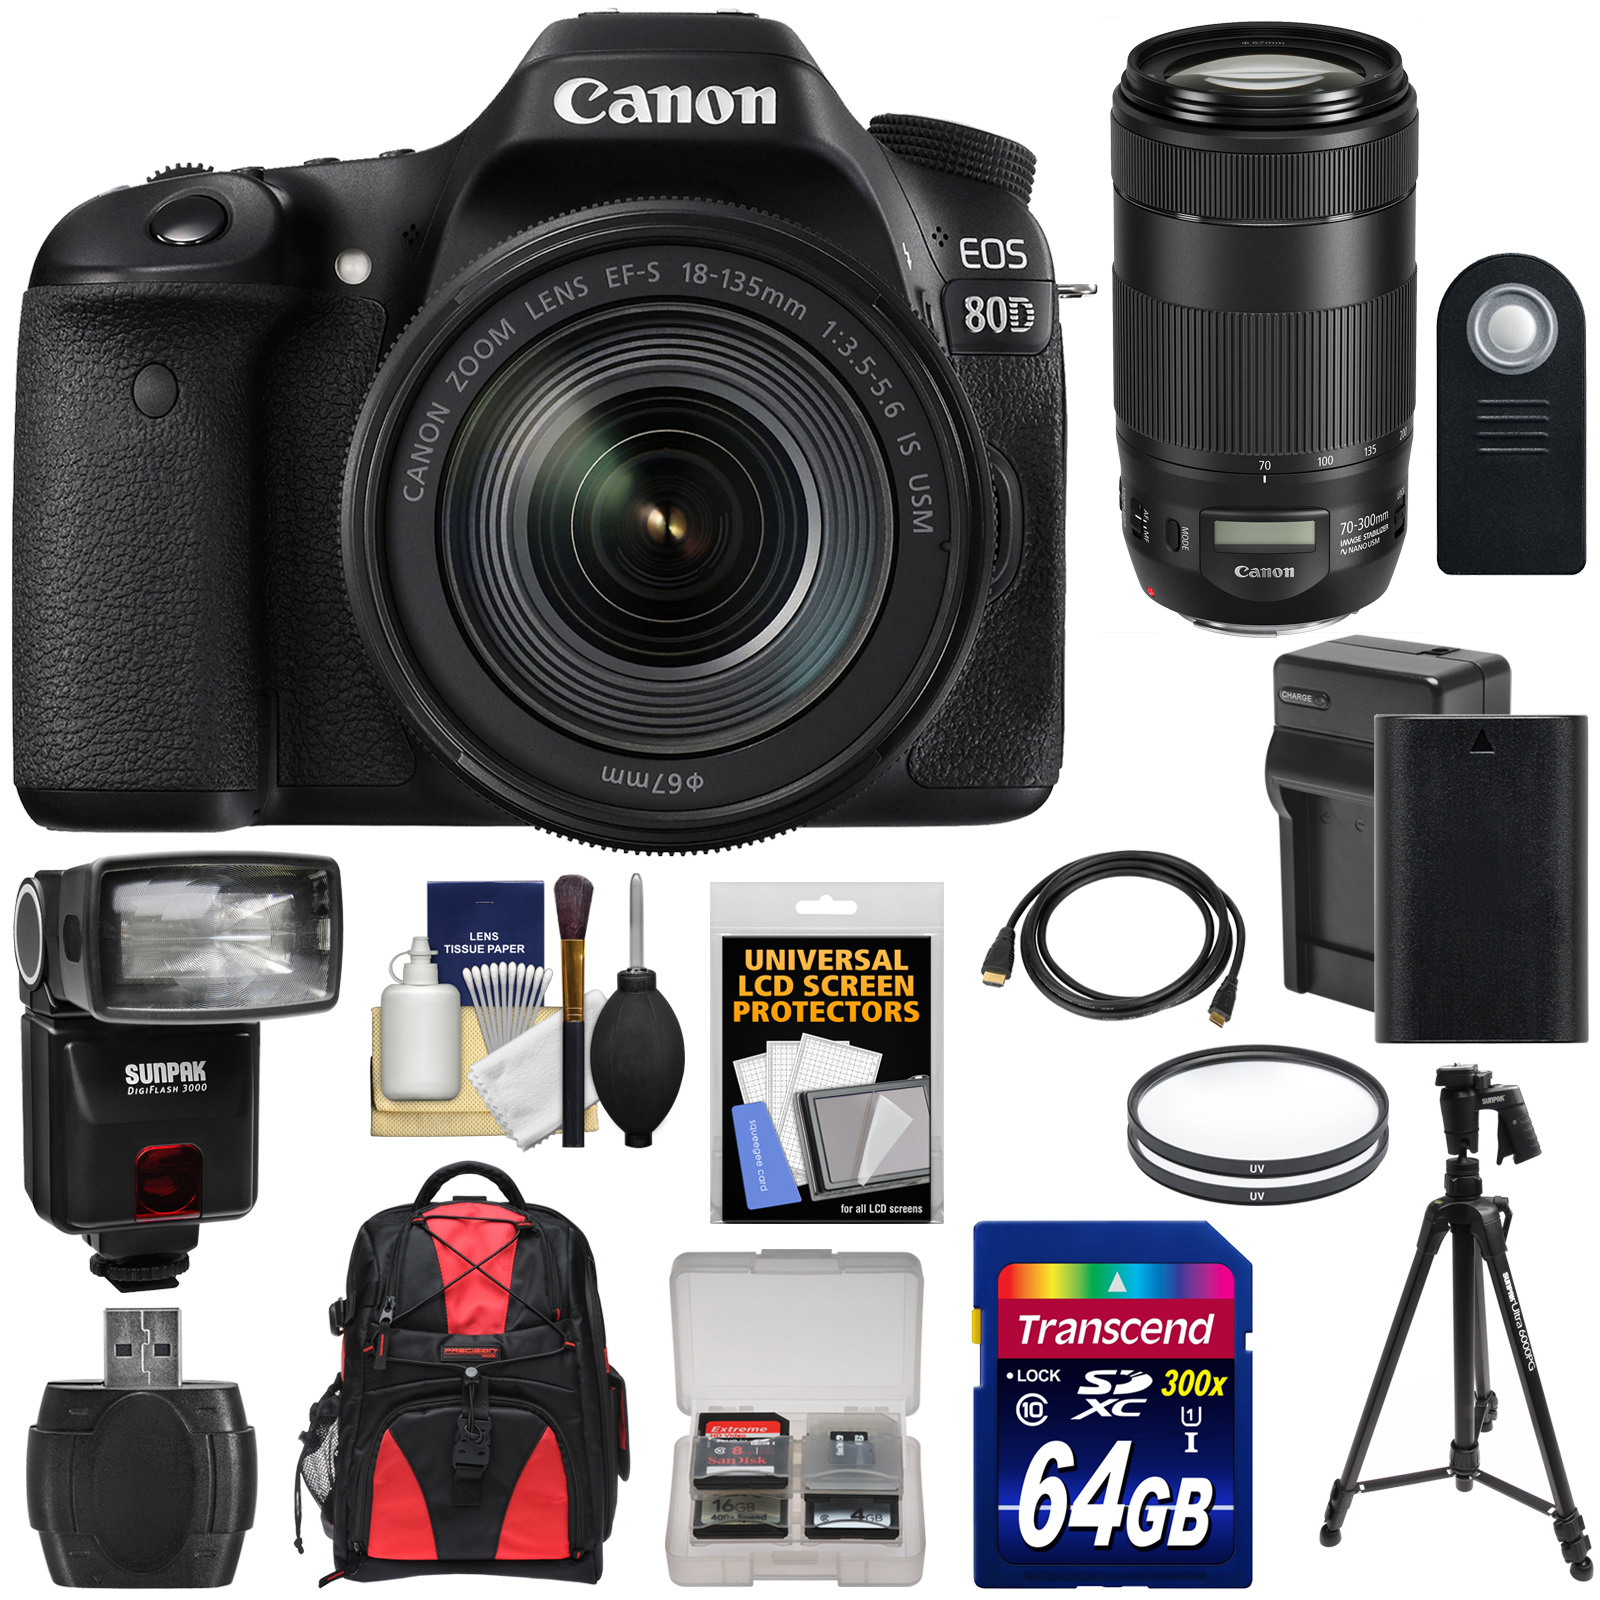 Canon EOS 80D Wi-Fi Digital SLR Camera & 18-135mm IS USM with 70-300mm Lens + 64GB Card + Battery + Charger + Backpack +... by Canon